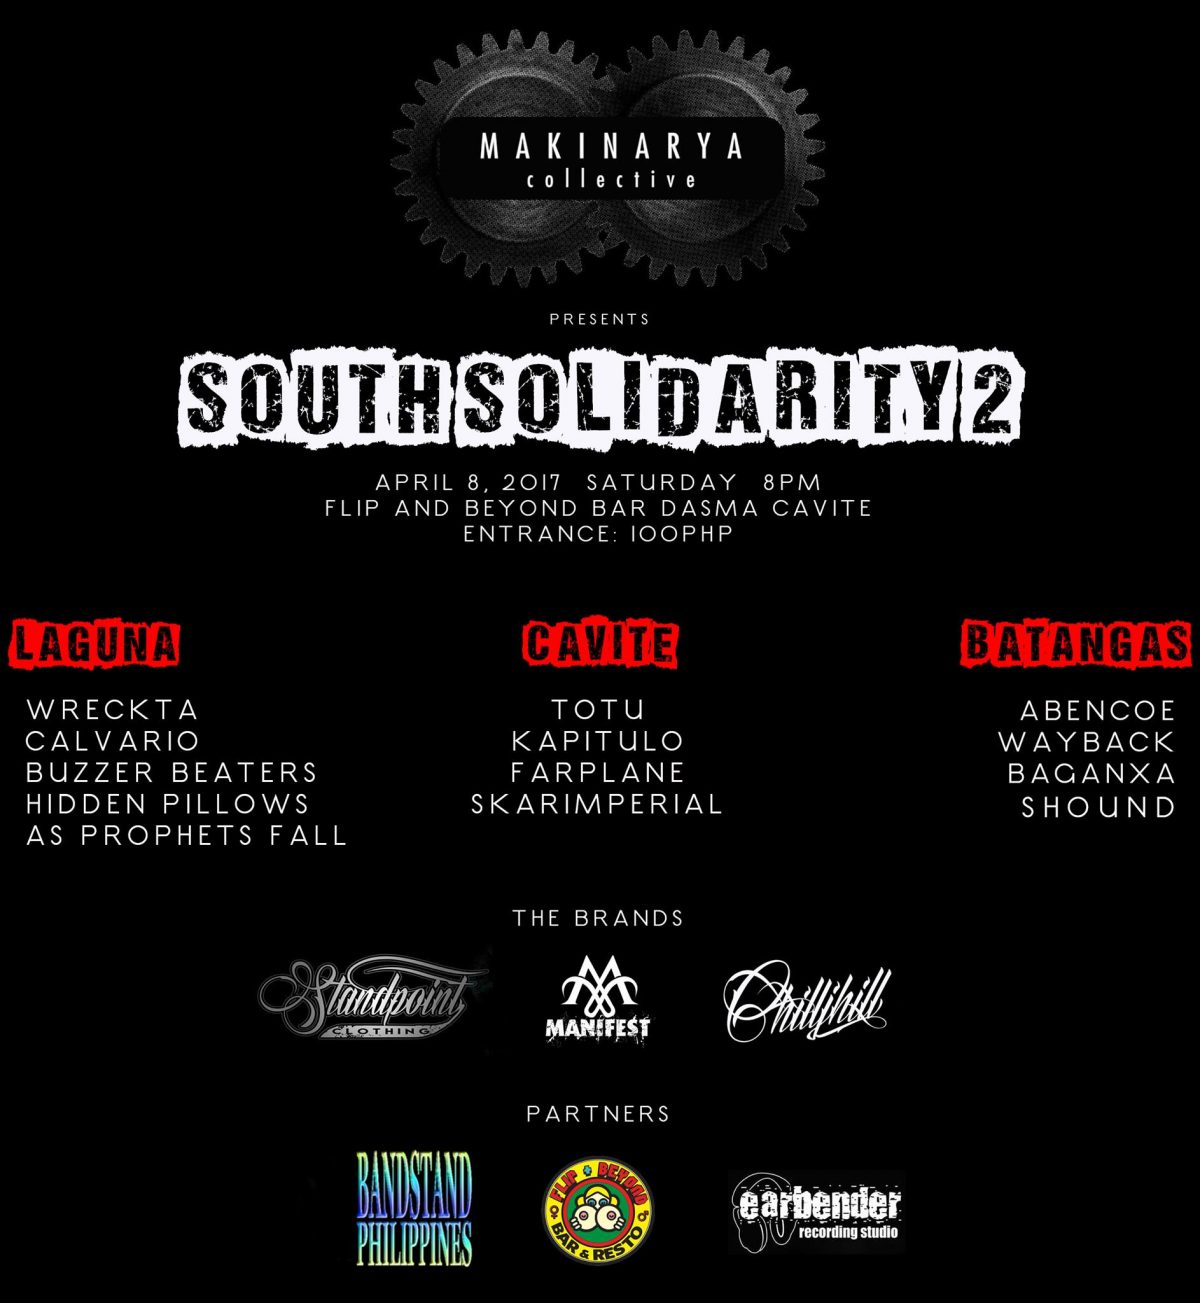 SOUTH SOLIDARITY 2